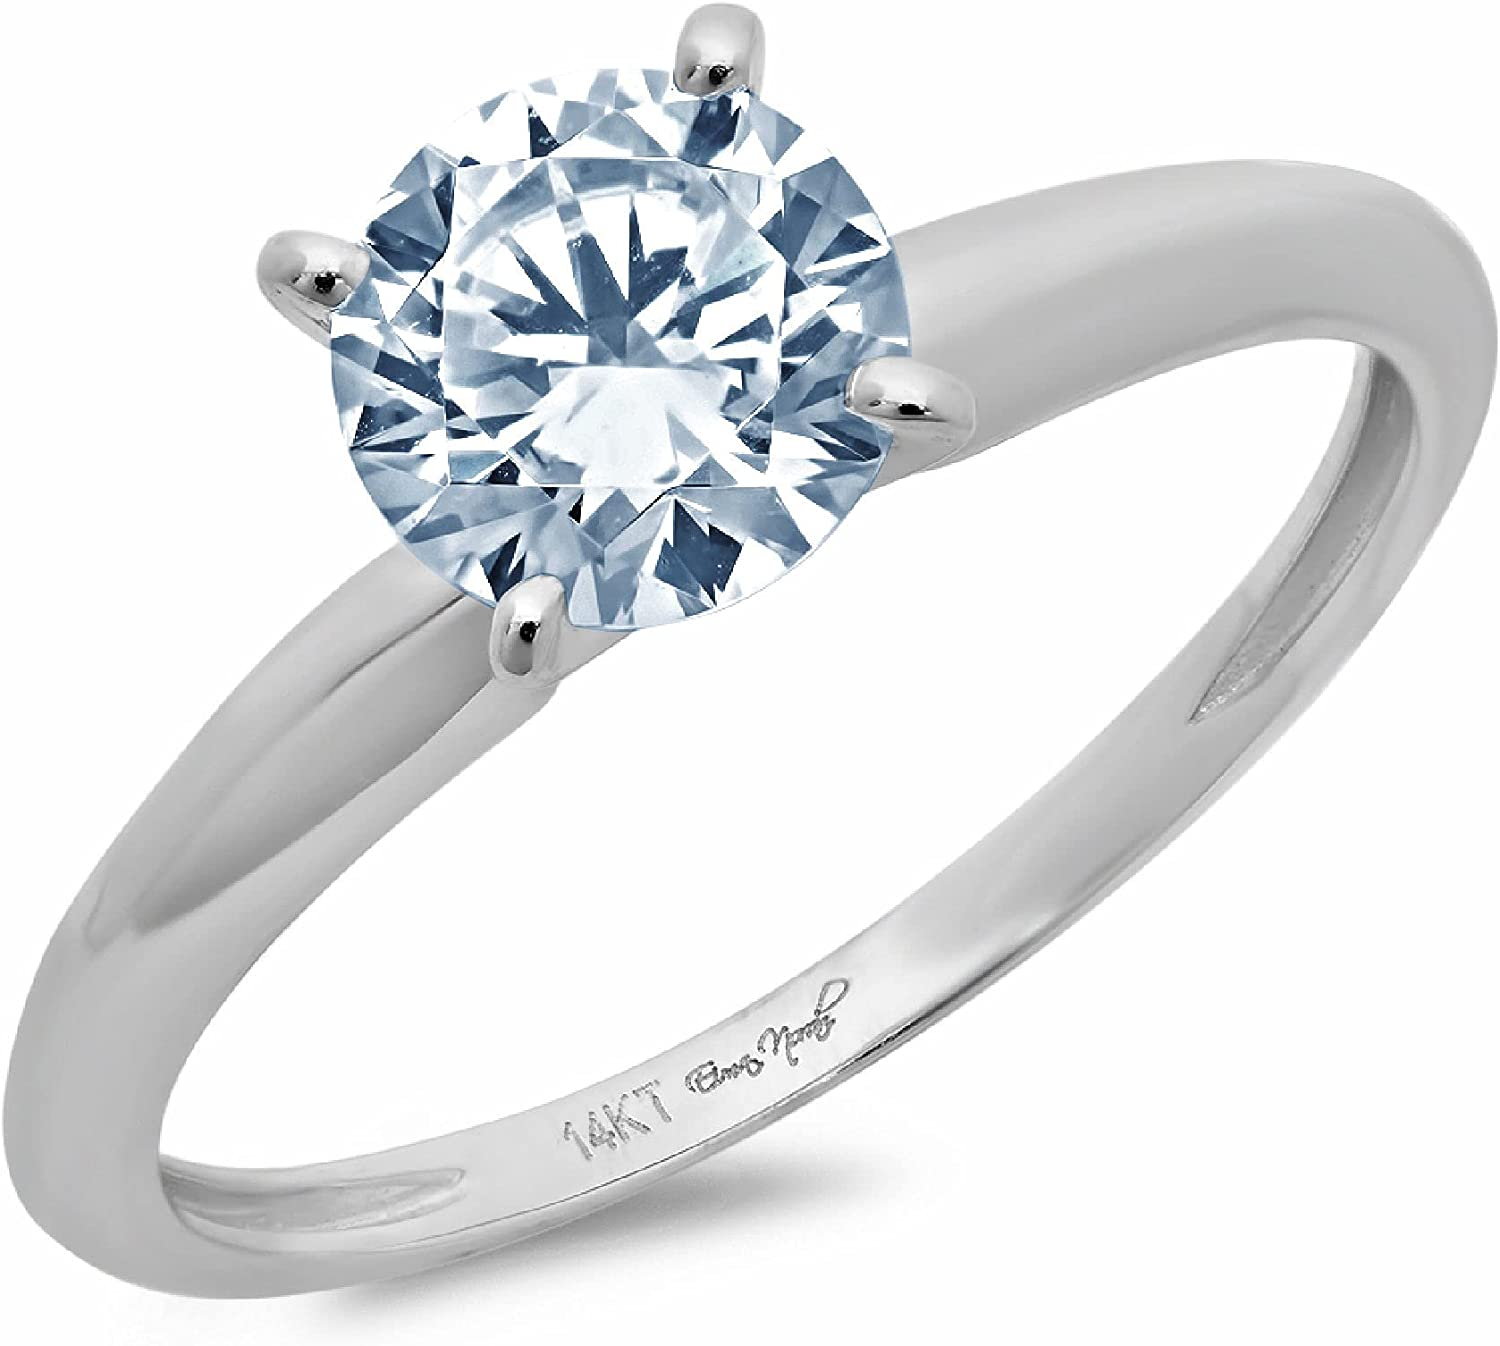 2.4ct Round Cut Solitaire Designer Genuine Natural Sky Blue Aquamarine Excellent VVS1 4-Prong Engagement Wedding Bridal Promise Anniversary Ring Solid 14k White Gold for Women